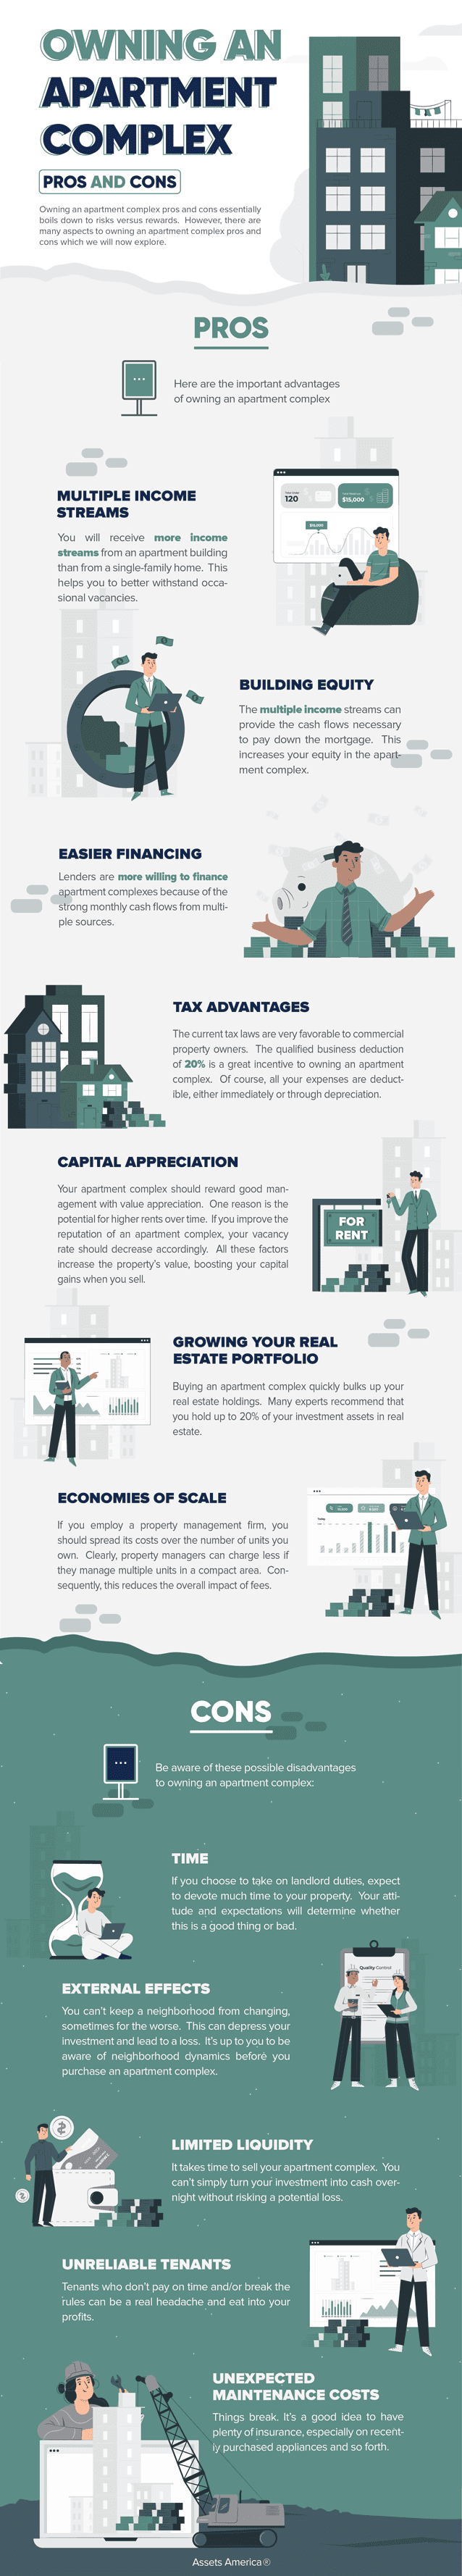 Owning an Apartment Complex: Pros and Cons #infographic